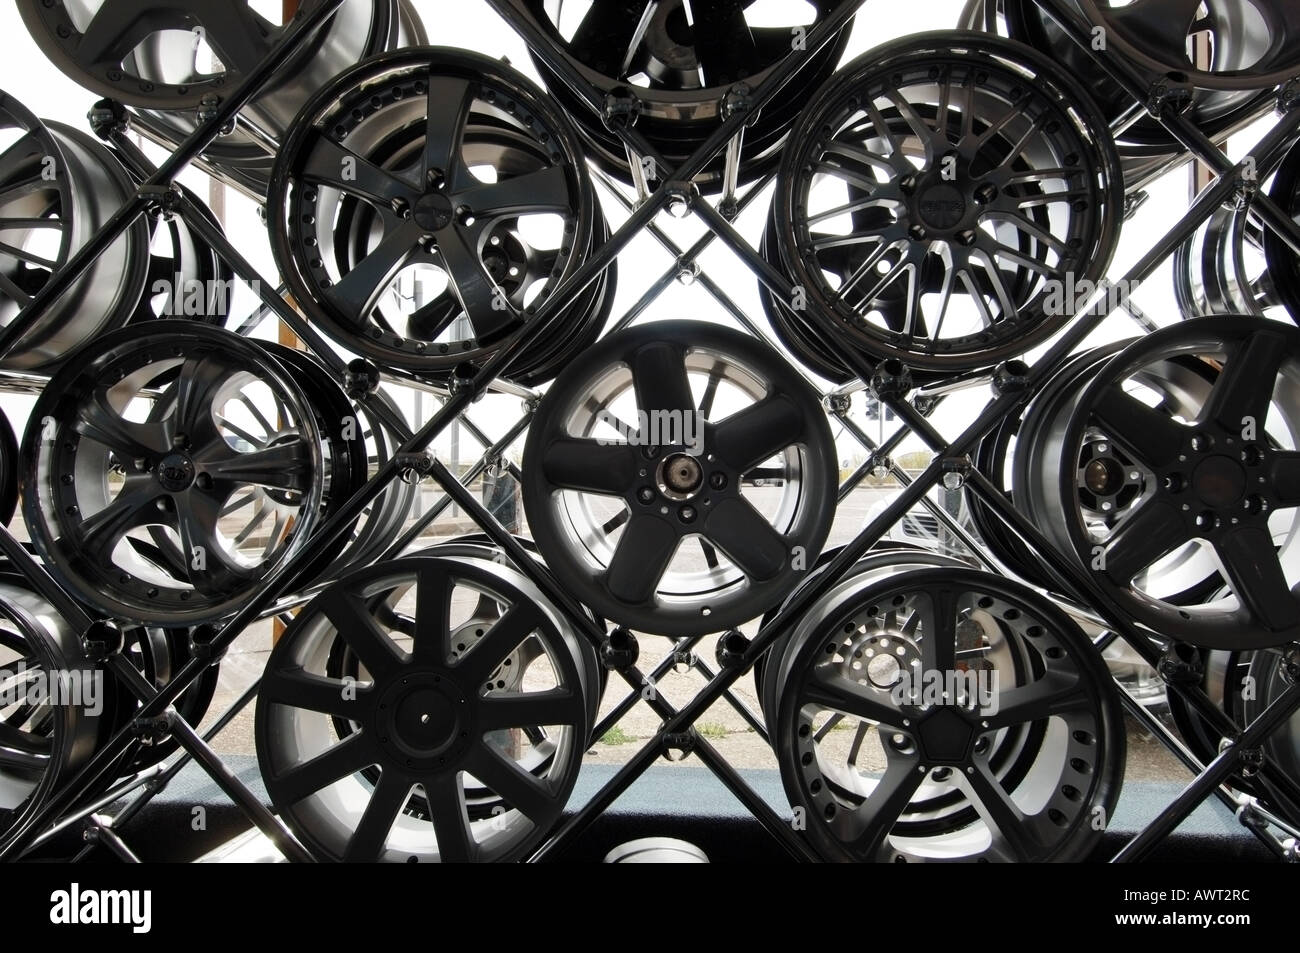 Designer alloy aluminium car wheels - Stock Image